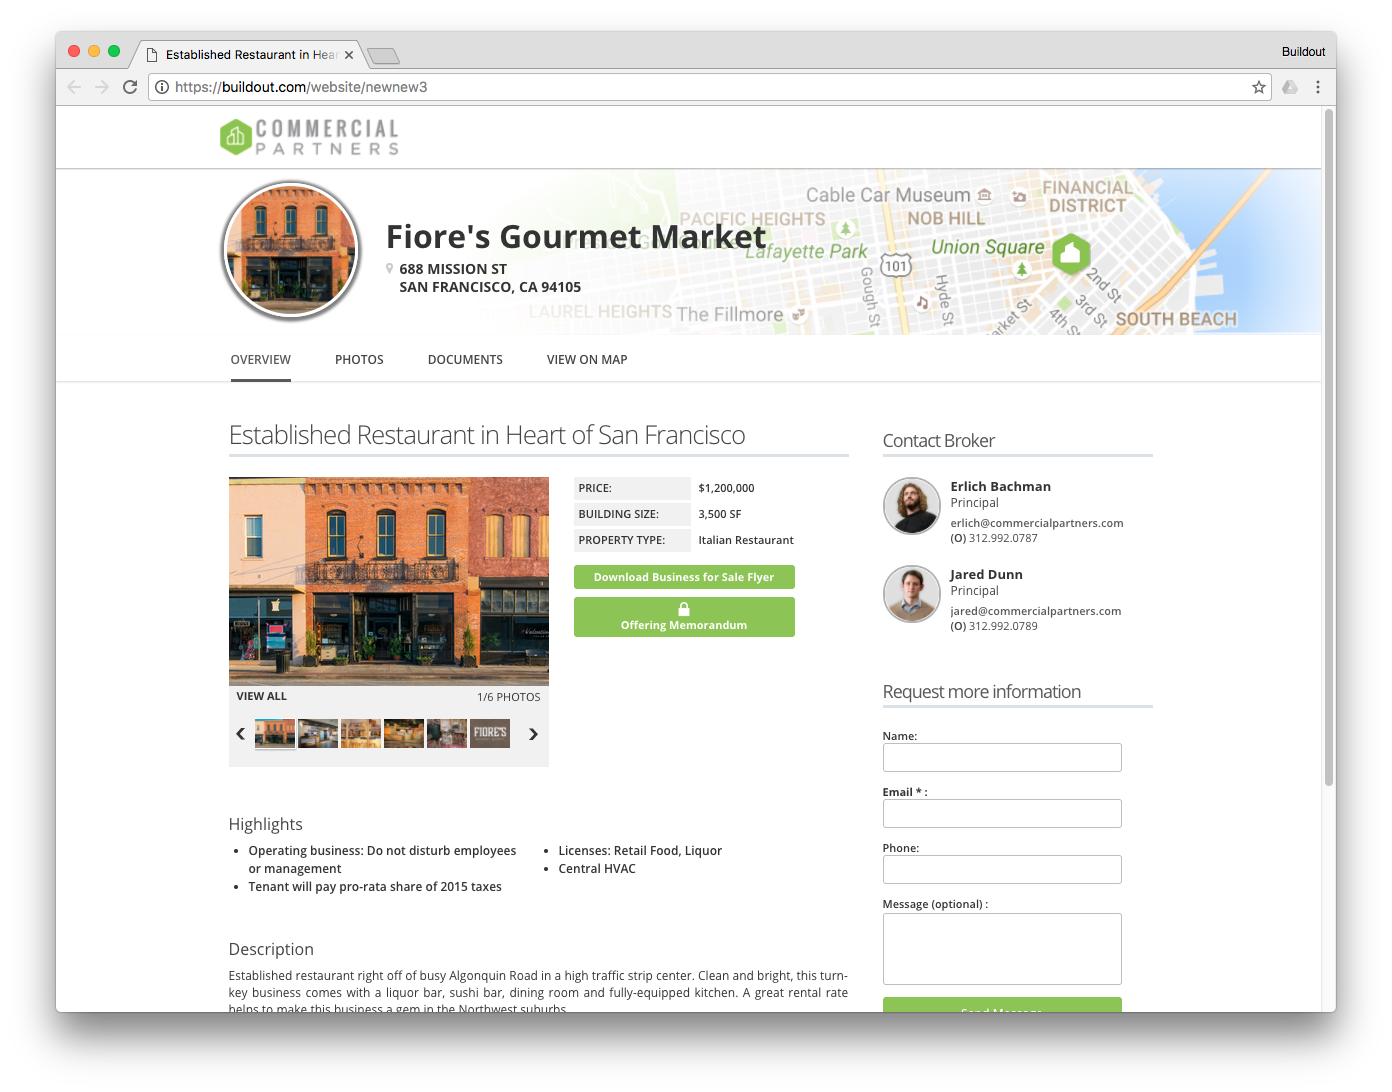 Each property you add in Buildout generates an individual property website so you can digitally showcase all your listings.